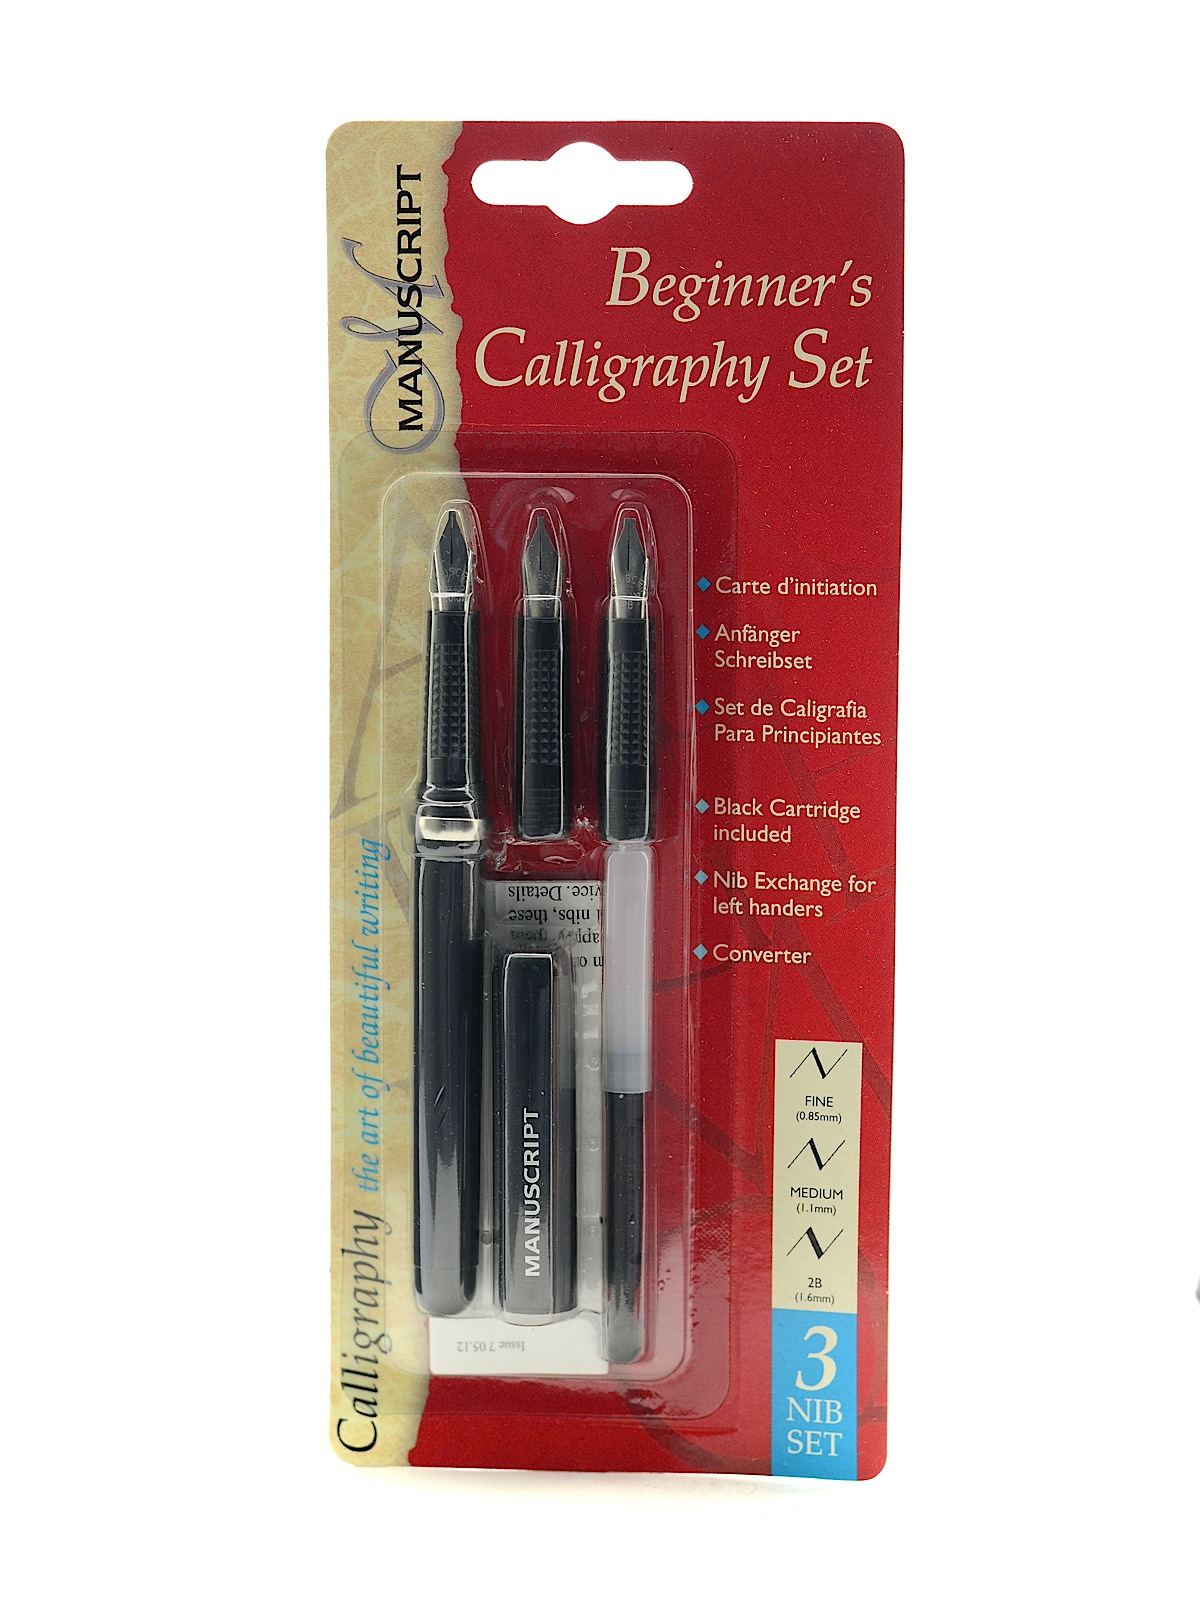 3 Nib Beginners Calligraphy Set